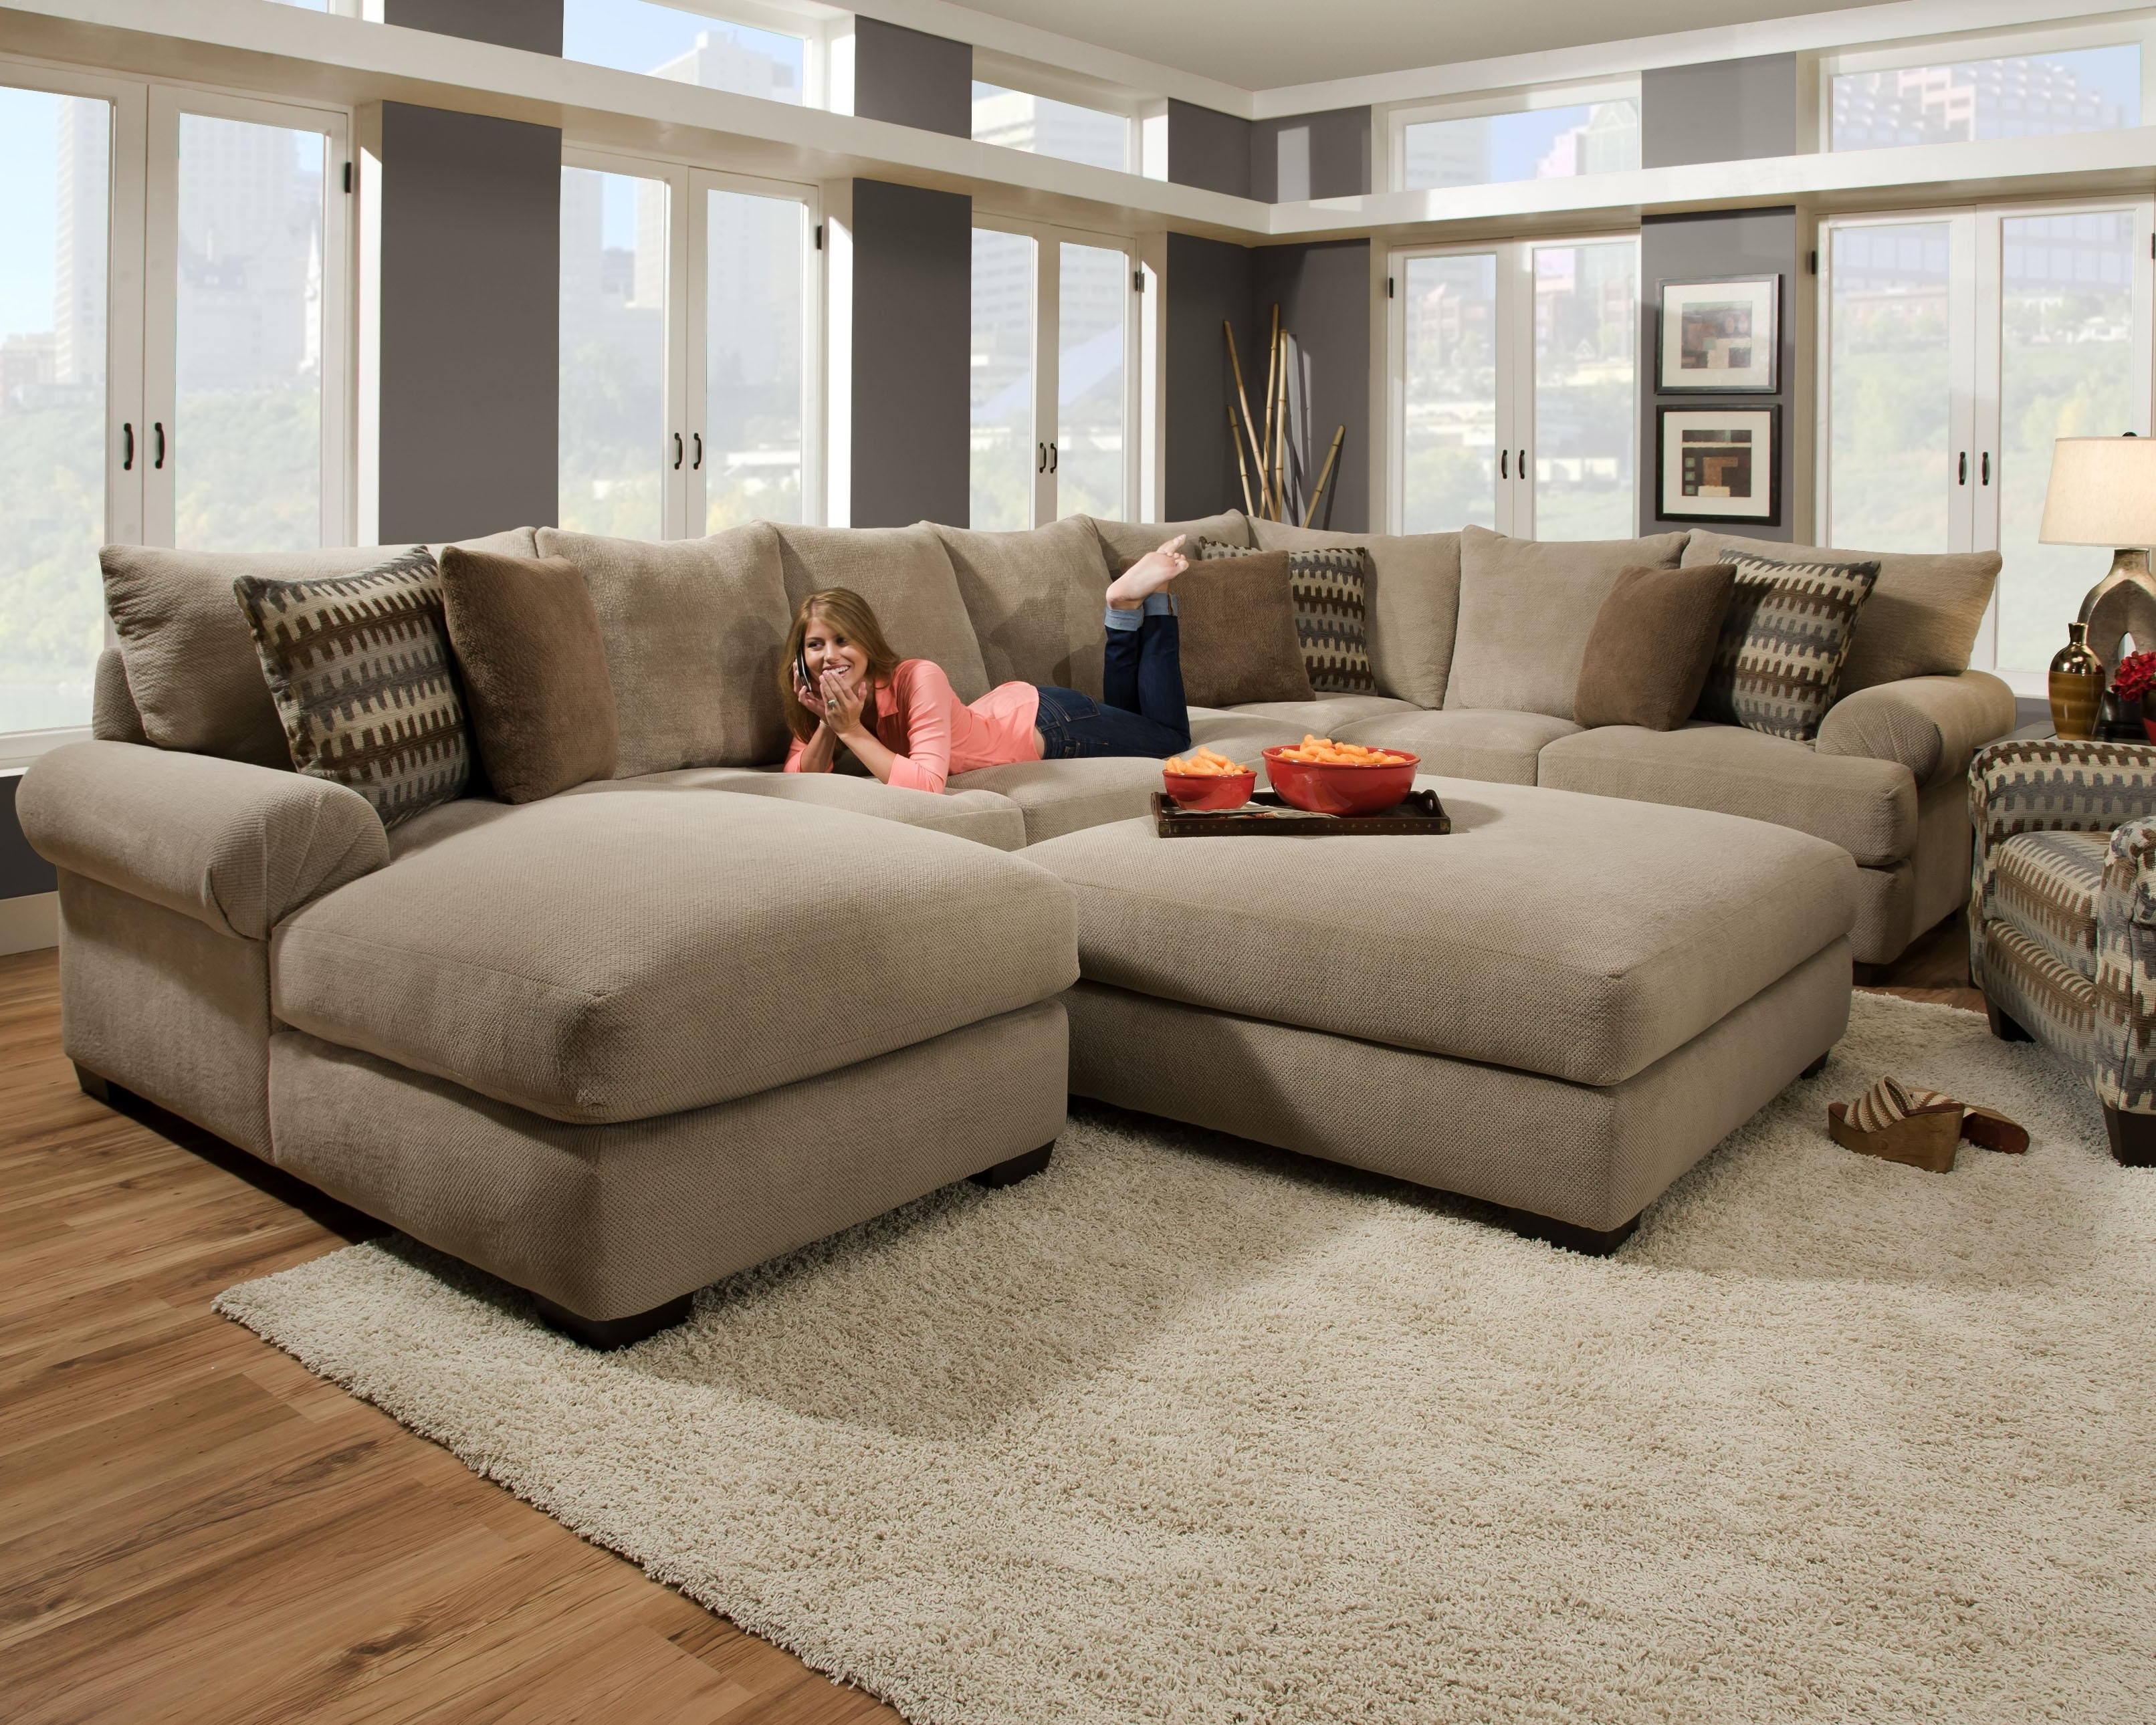 Current Sectional Sofa : Awesome Oversized Sectional Sofas With Chaise Throughout Large Sectionals With Chaise (View 9 of 15)